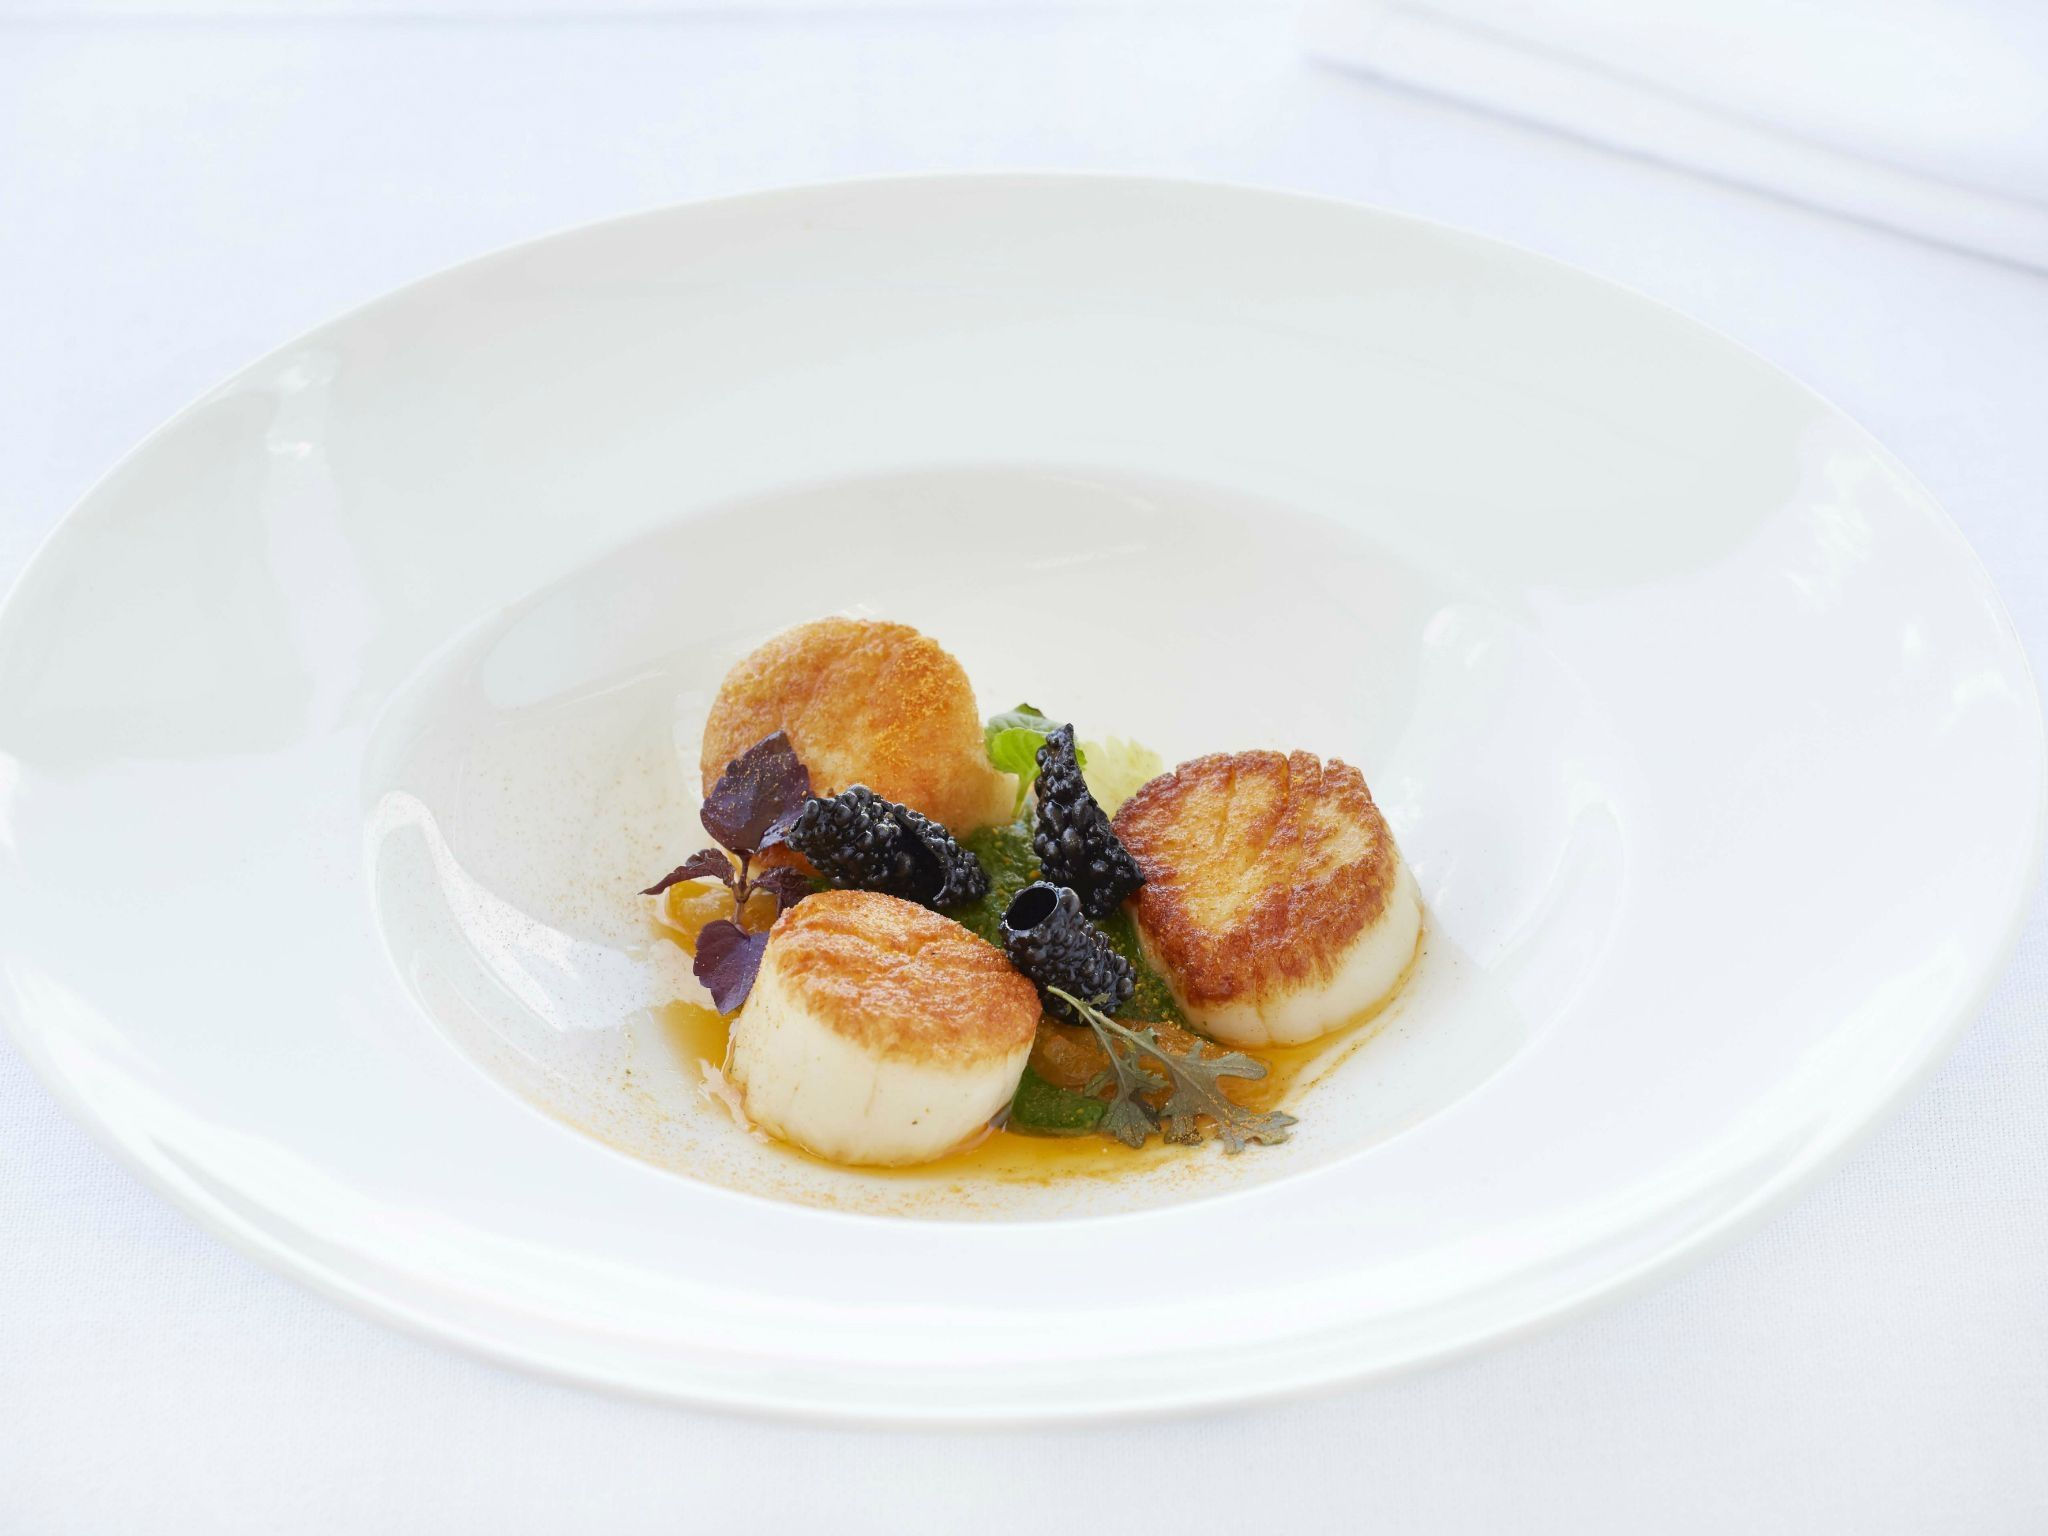 "=""Grilled-scallops-with-tandoori-pea-pure-with-coconut-milk-and-lemongrass-GB-Roof-Garden-Restaurant""/"